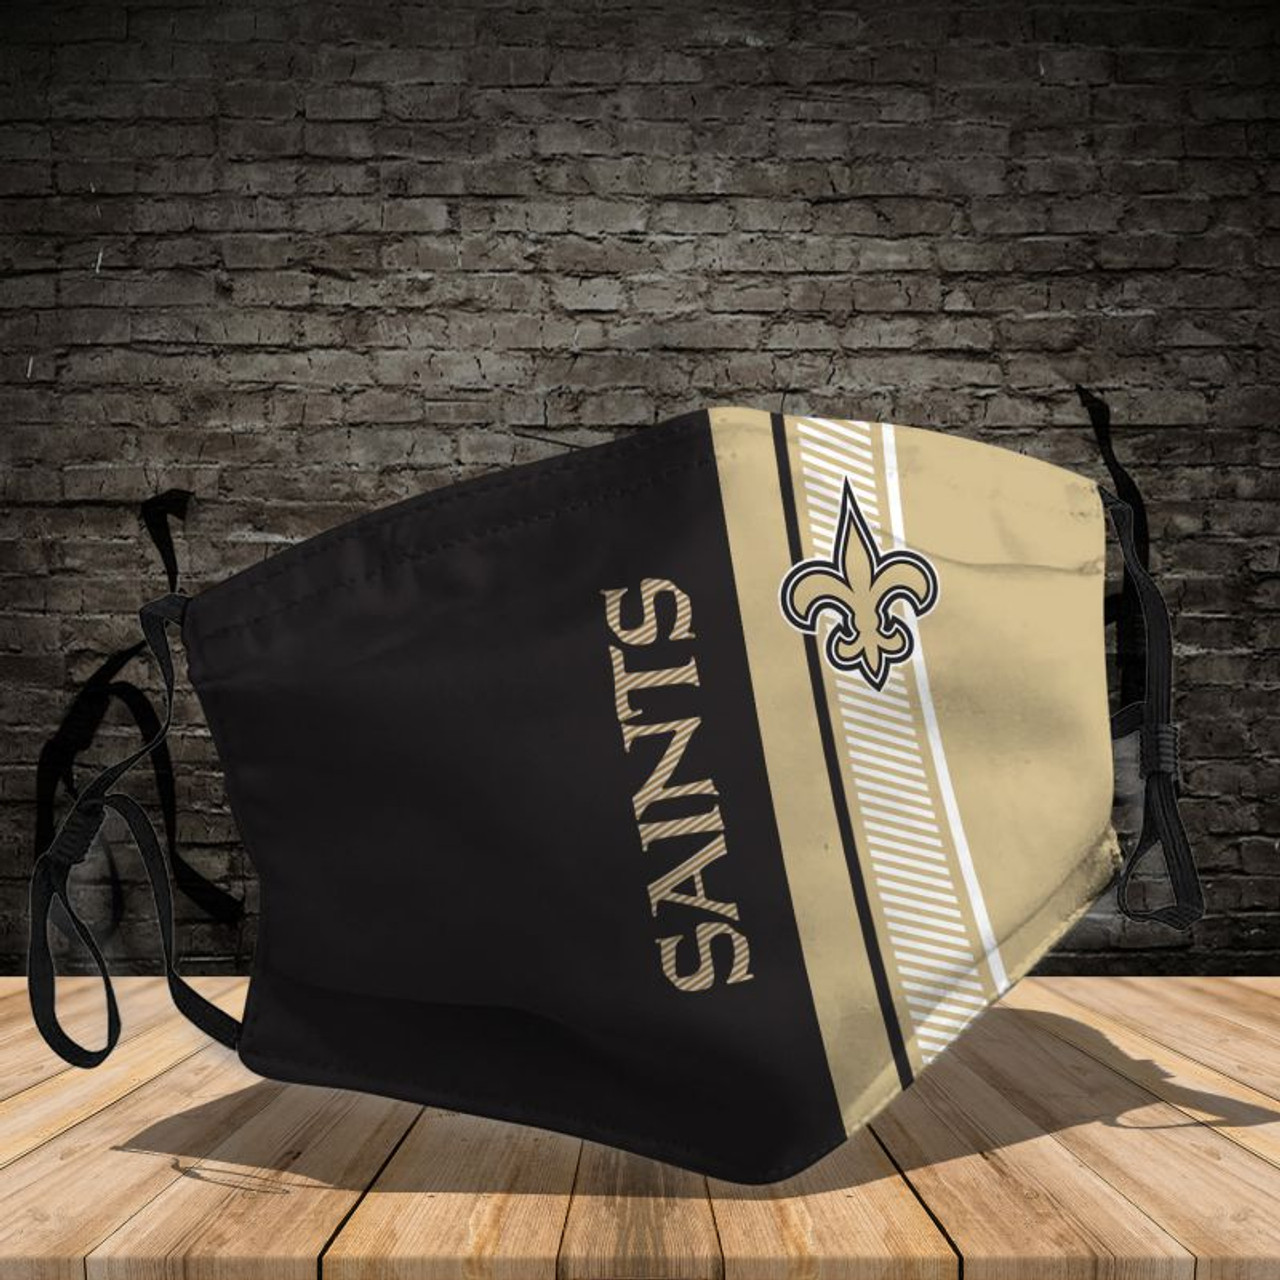 **(OFFICIAL-NEW-ORLEANS-SAINTS-TEAM CUSTOM-3D-PRINTED DESIGNS/BREATHABLE PM2.5 FILTER BACTERIA/VIRUS PROOF & ANTI DUST PROOF WITH-ADJUSTABLE TIE-BACKS/REUSABLE-MACHINE-WASHABLE CUSTOM FACE MASKS/ALL-ADJUSTABLE-NOSE-CLIPS & INSIDE-5-LAYERED-FILTERS)**